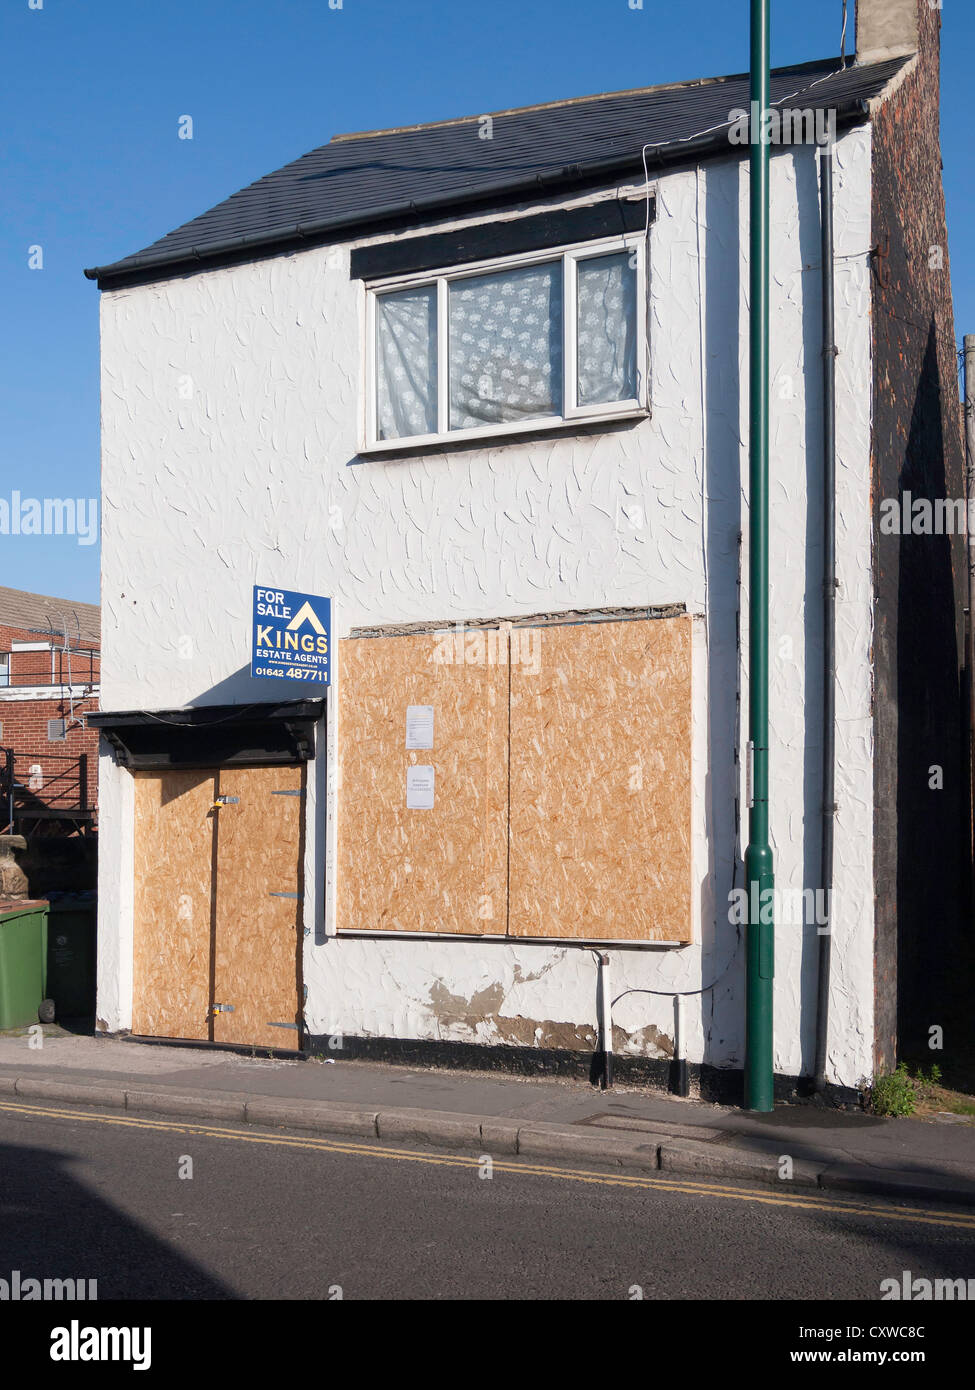 A small back street cottage or shop for sale with ground floor door and window boarded up to prevent damage or intrusion - Stock Image